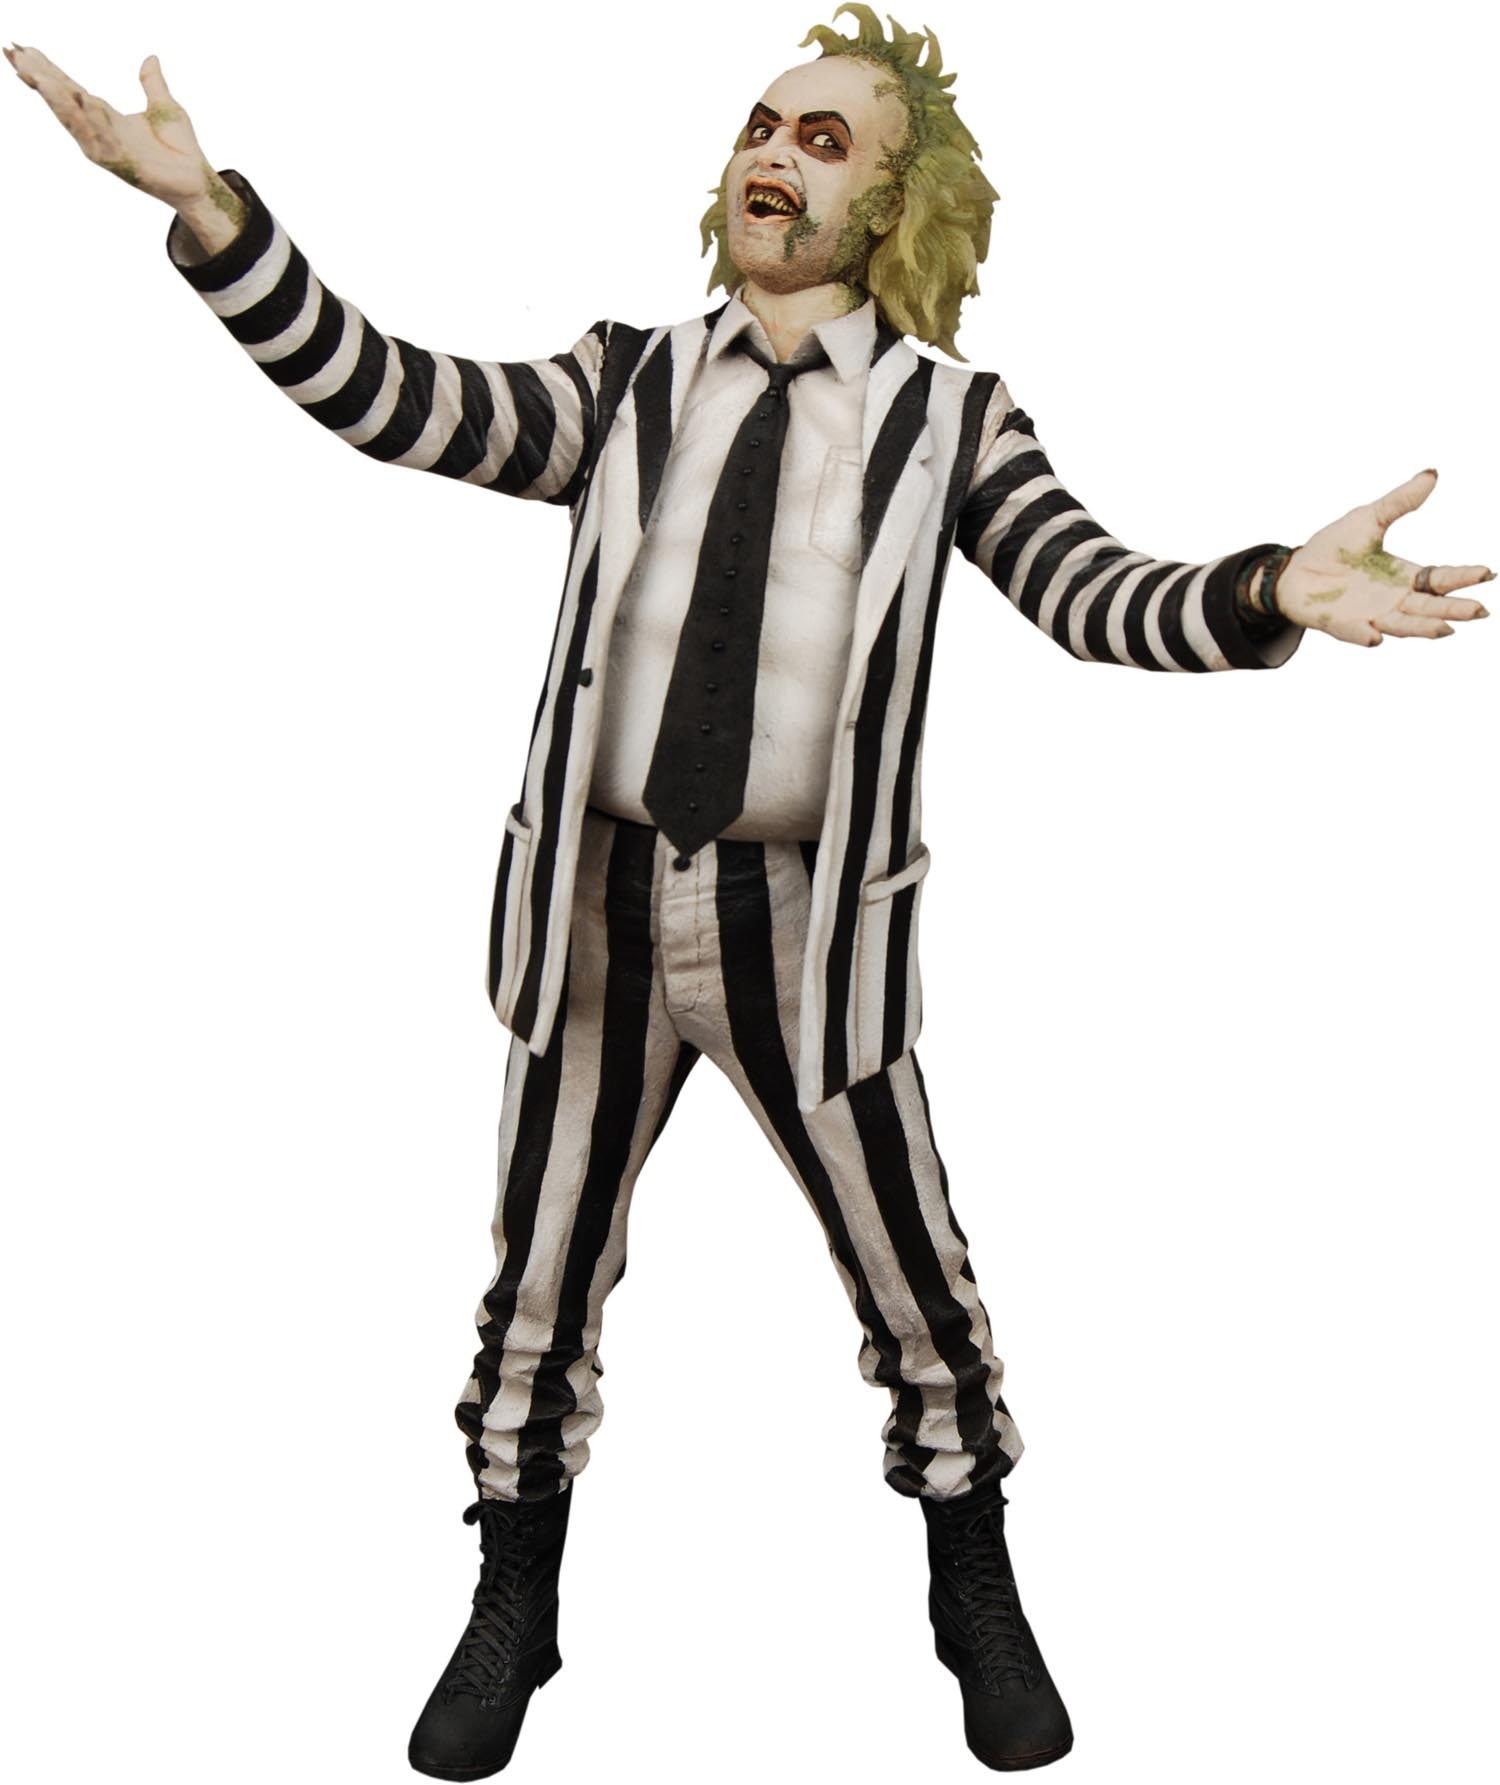 Beetle Juice - $14.99